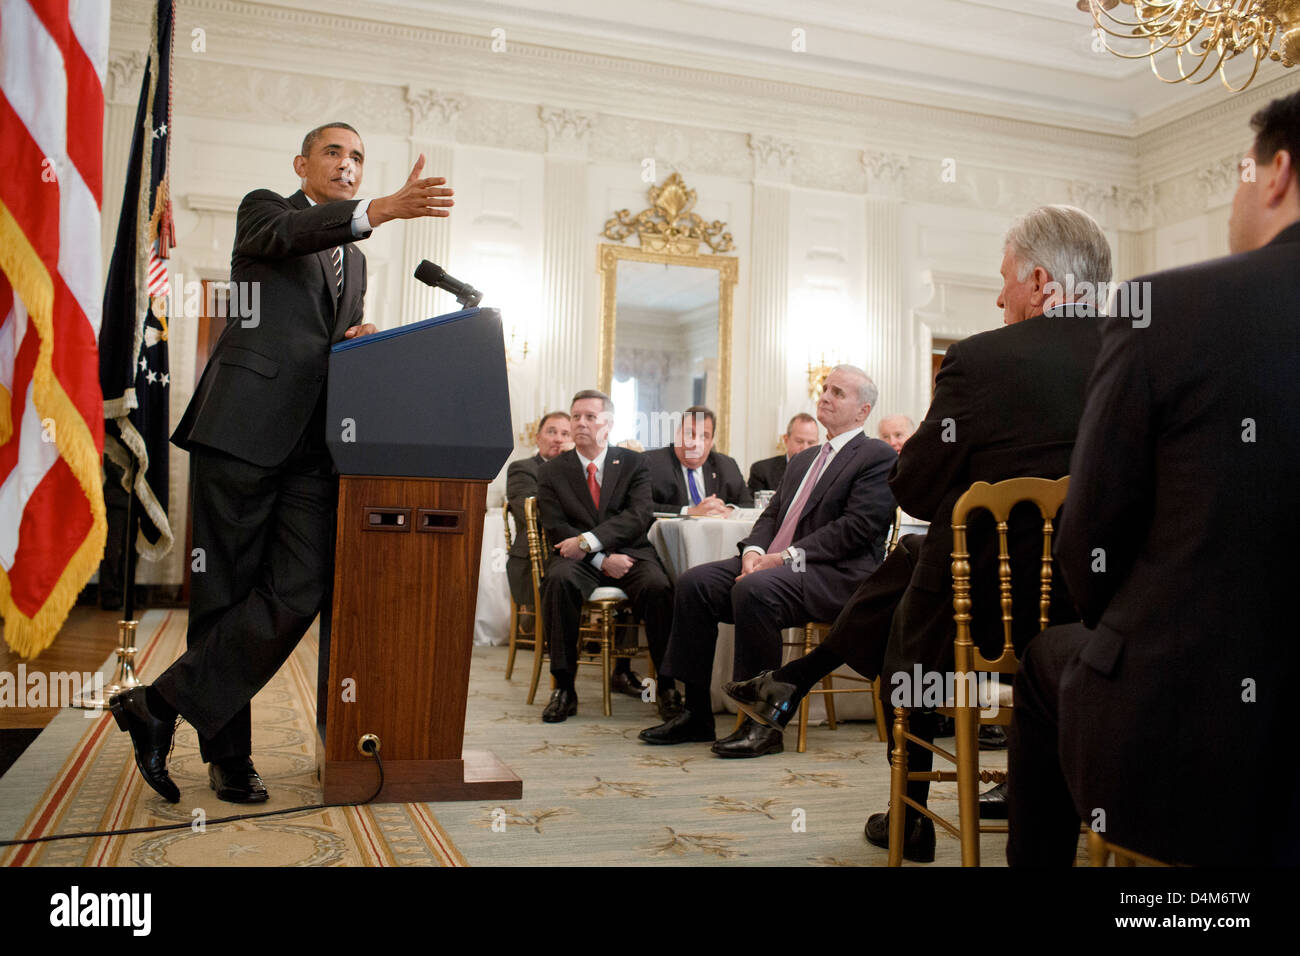 US President Barack Obama delivers remarks during a meeting with the National Governors Association in the State - Stock Image